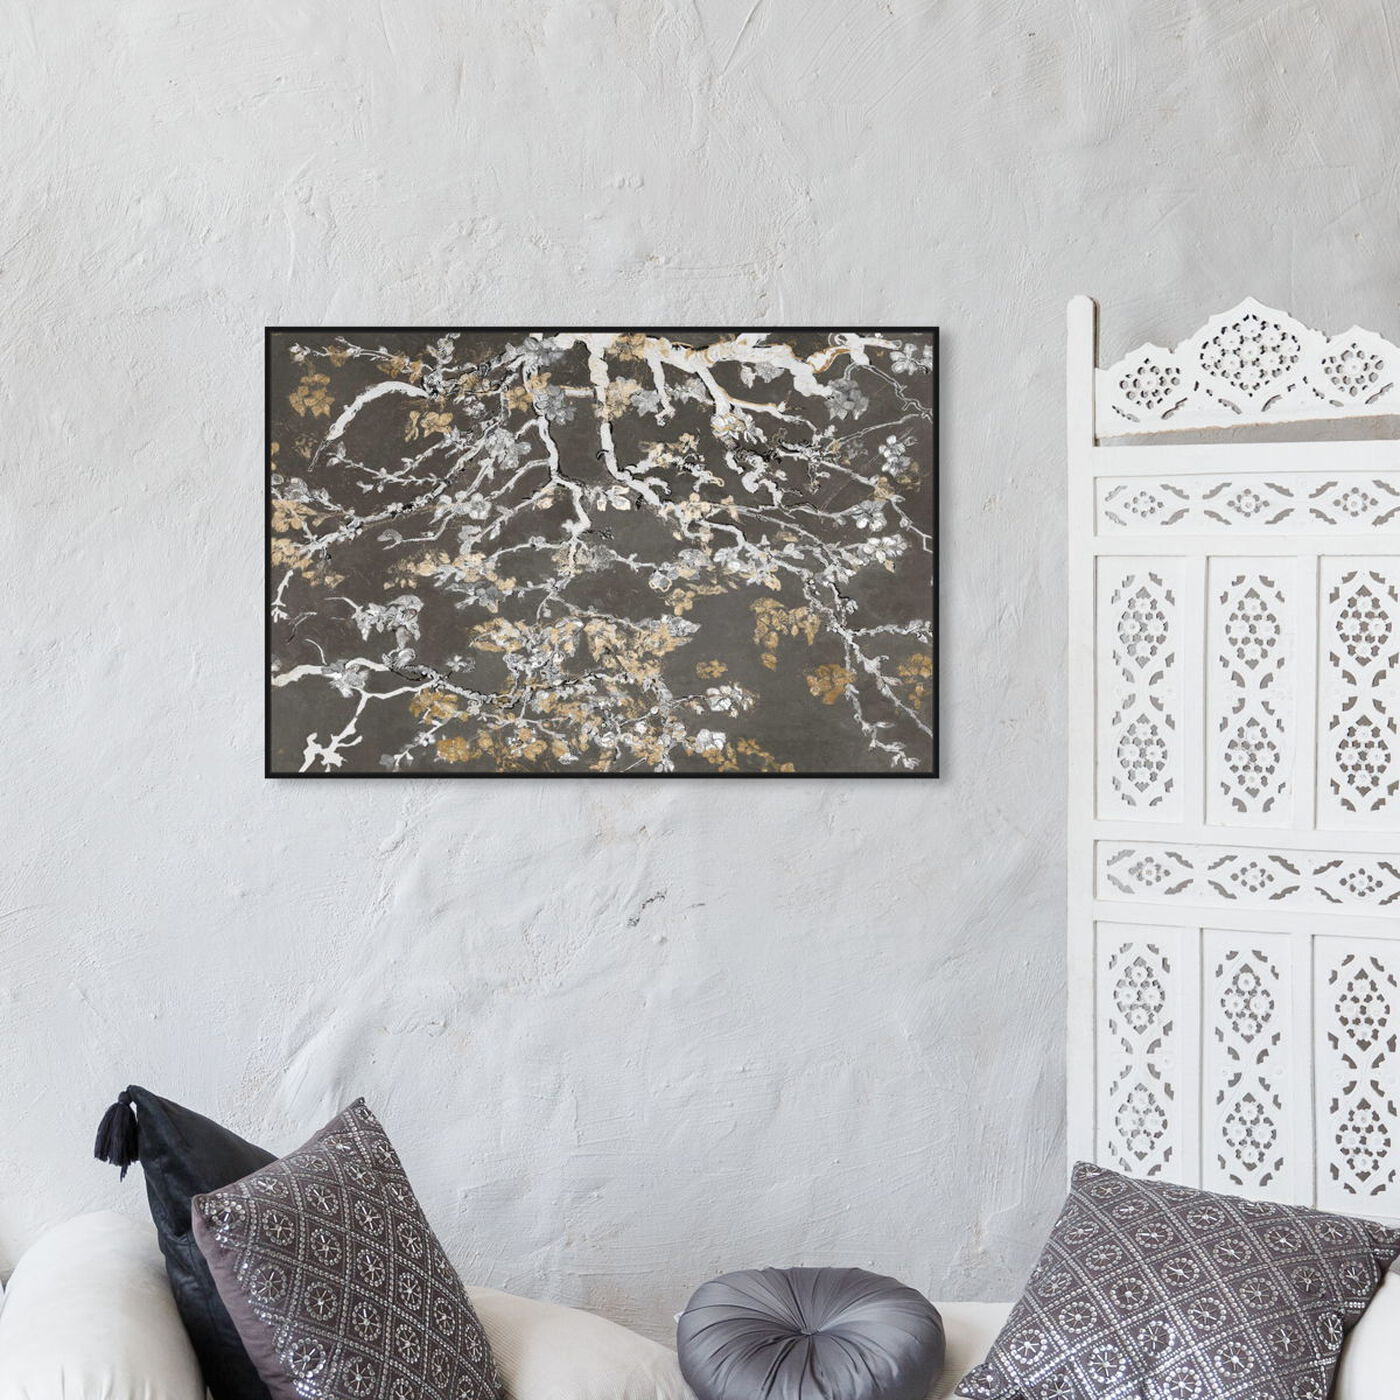 Hanging view of Van Gogh Charcoal Blossoms Inspiration featuring classic and figurative and classical figures art.